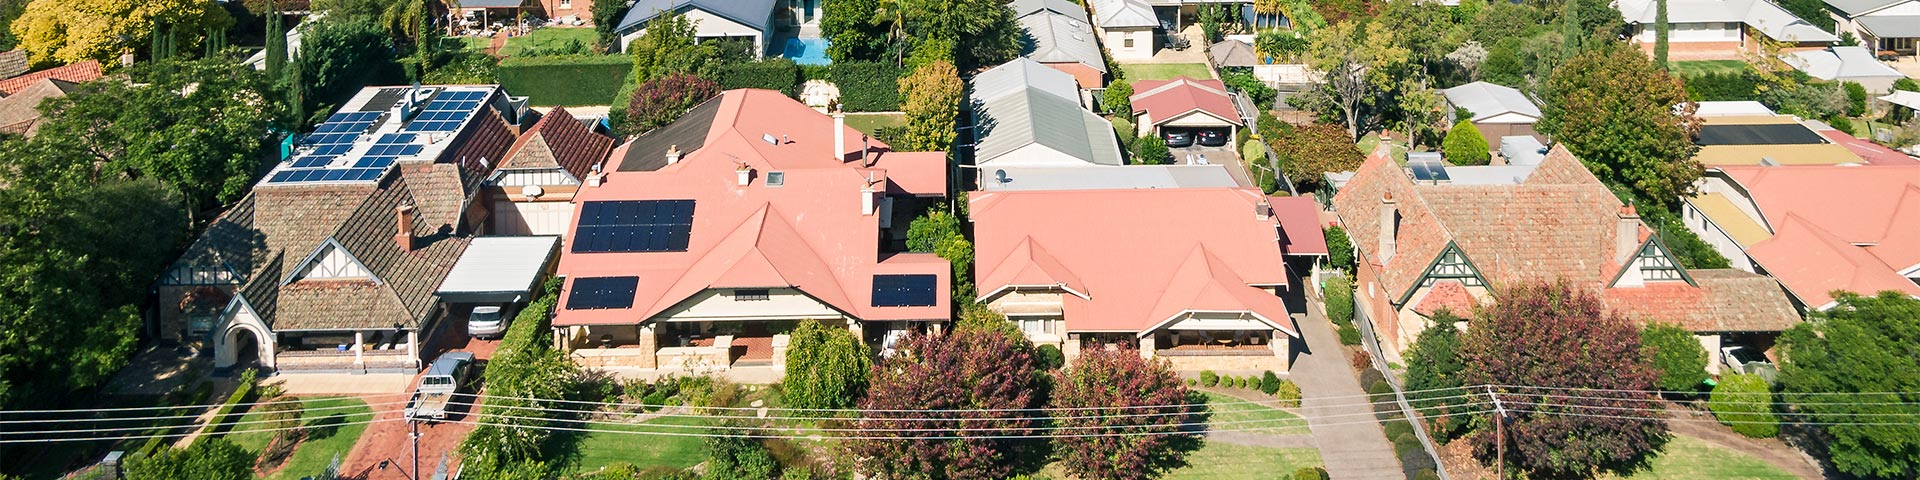 A row of houses in Adelaide's eastern suburbs